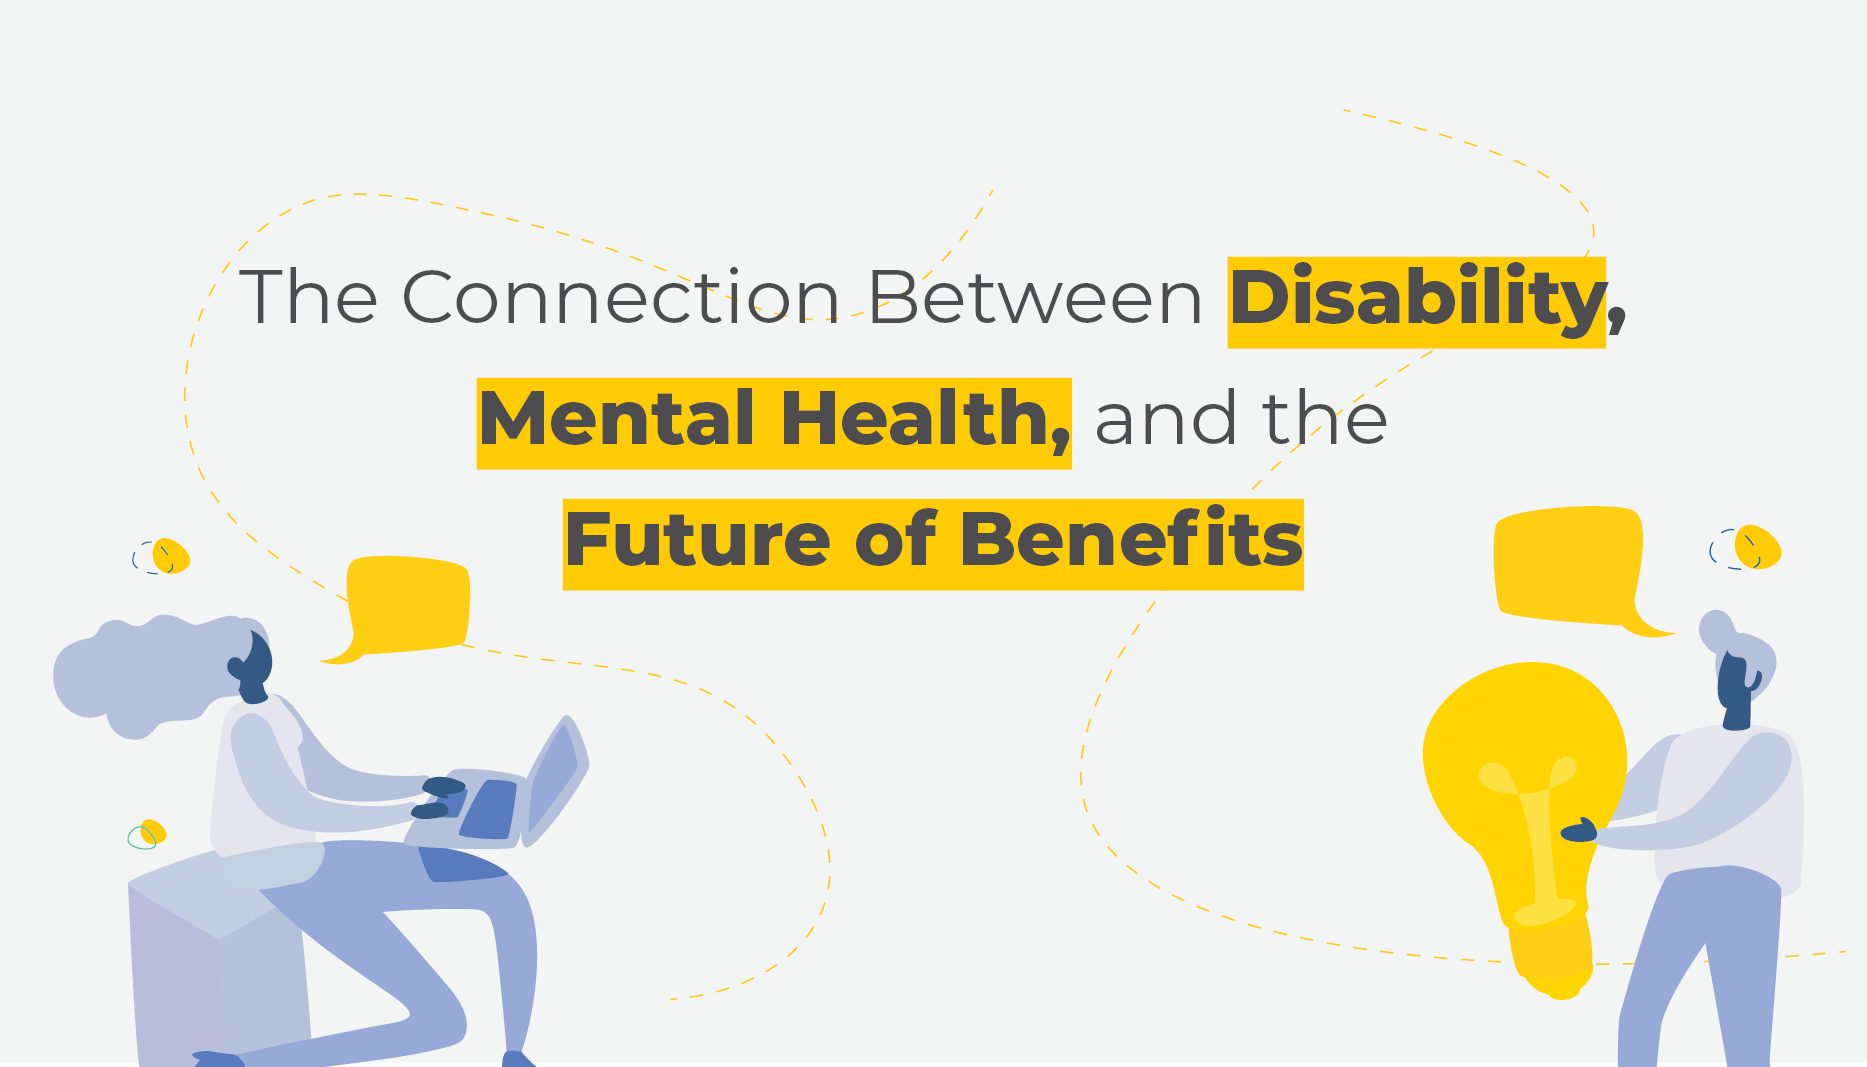 The Connection Between Mental Health and Disability | Benefits by Design